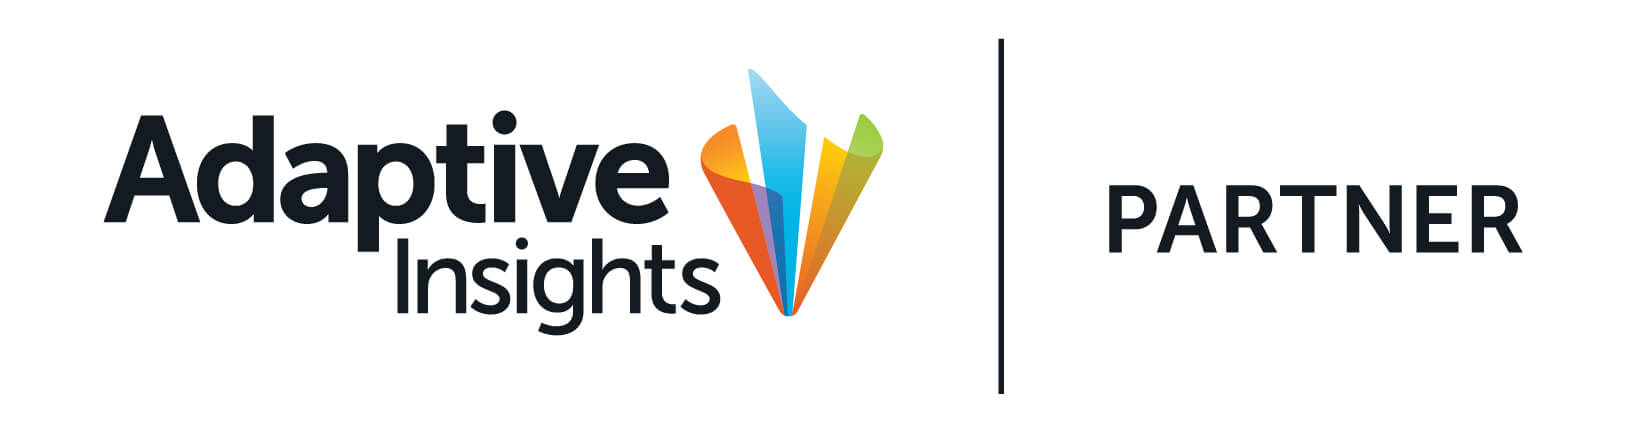 Adaptive_Insights-Partner-logo